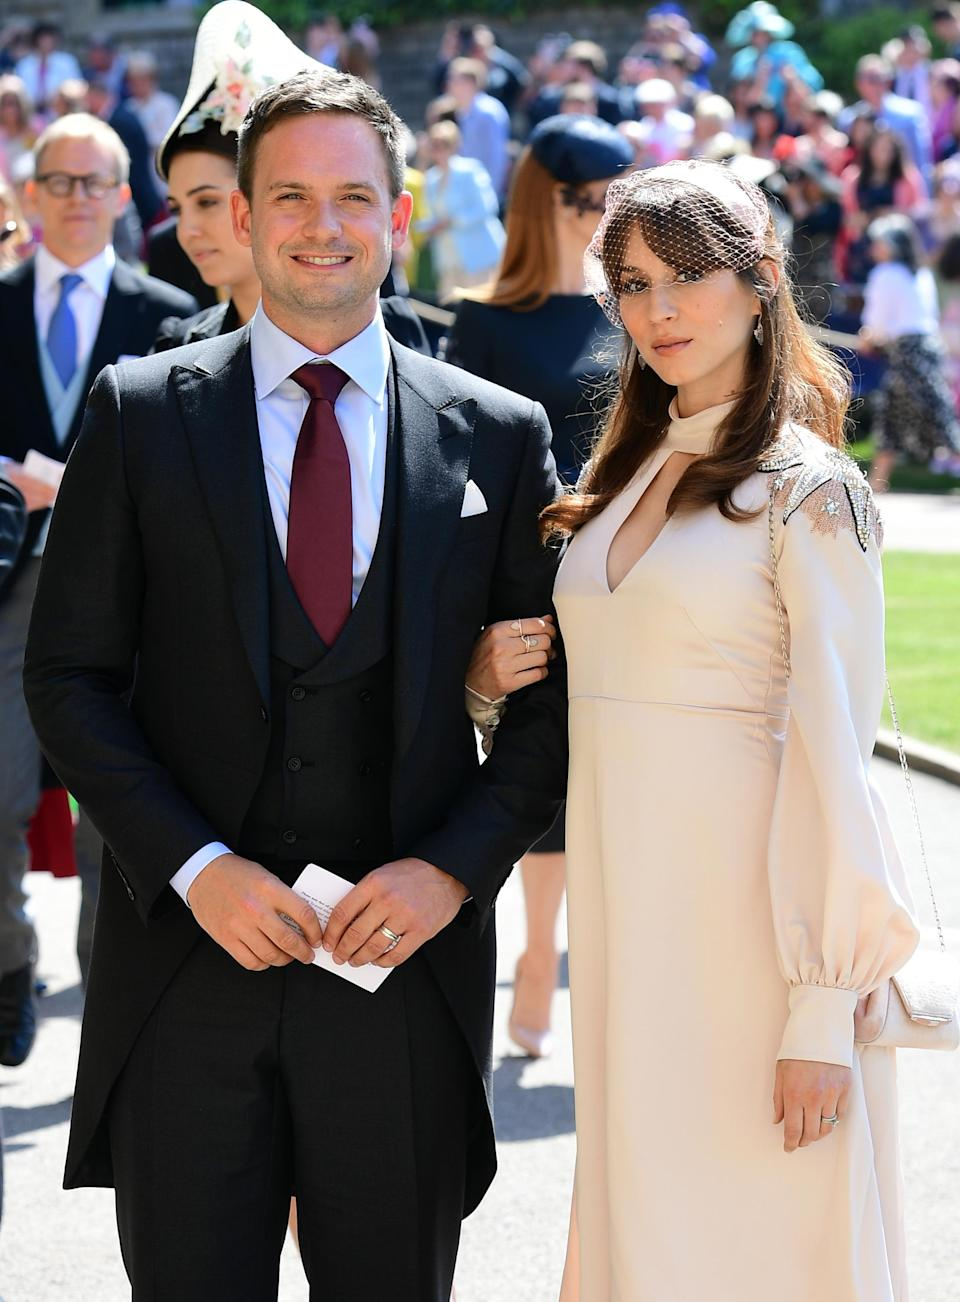 Suits actor Patrick J. Adams and his wife Troian Bellisario arrive at St George's Chapel (Picture: PA)